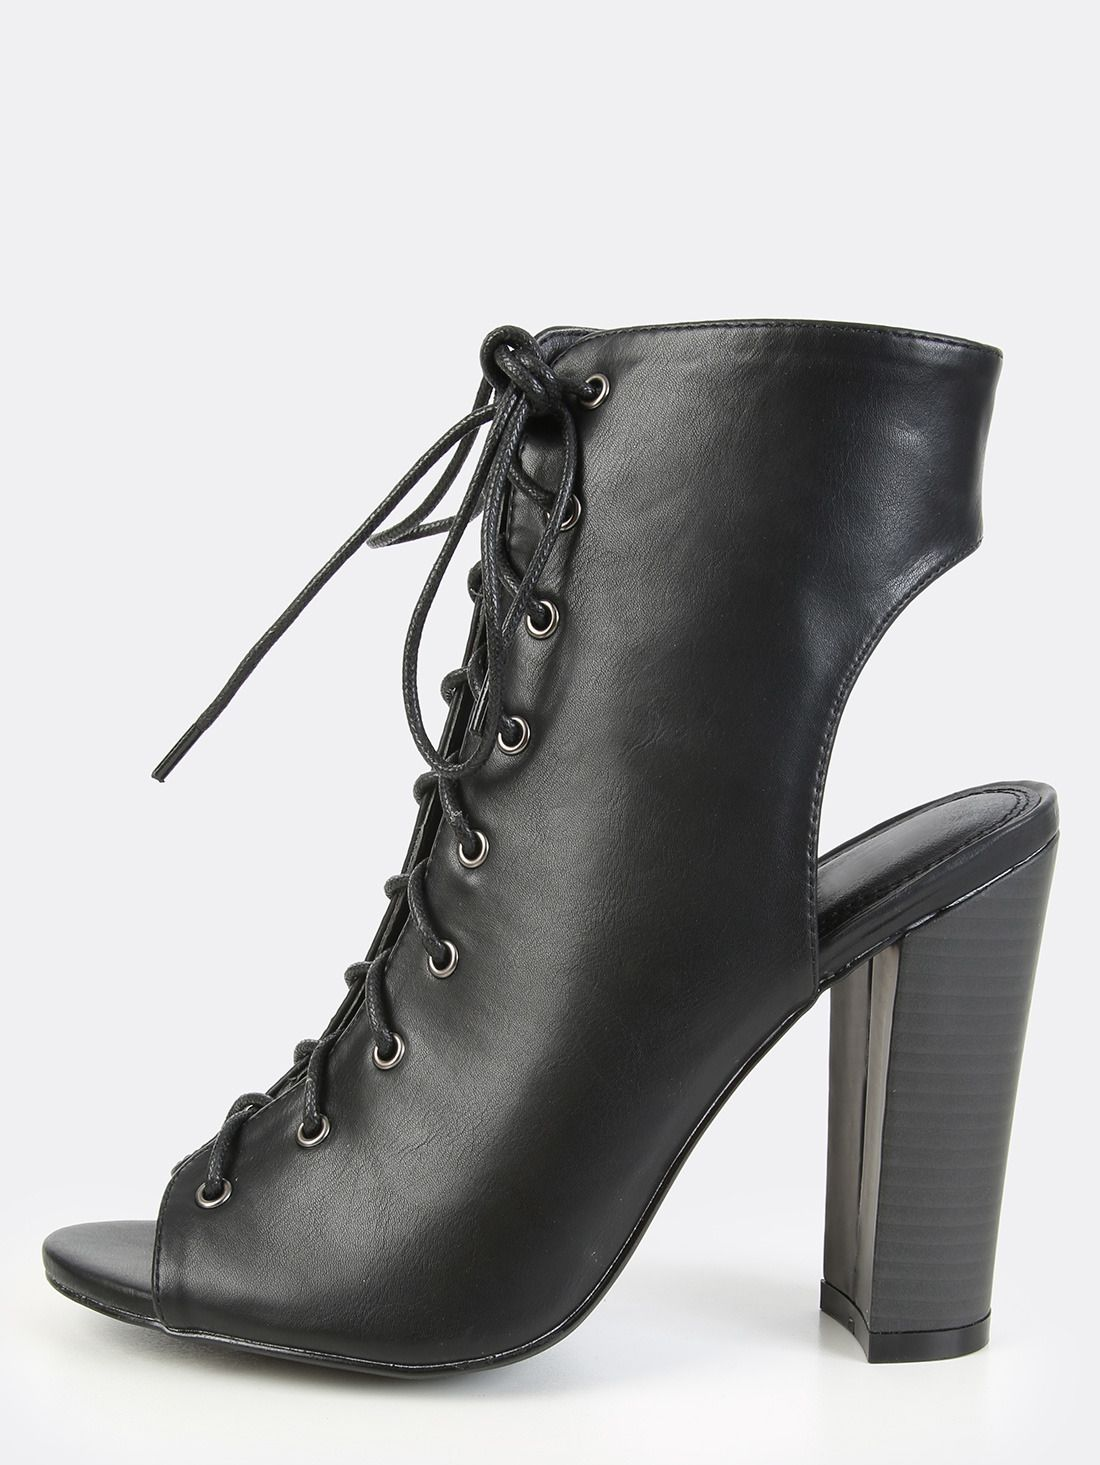 Stylish Black and White Peep Toe Lace Up Ankle Boots Online